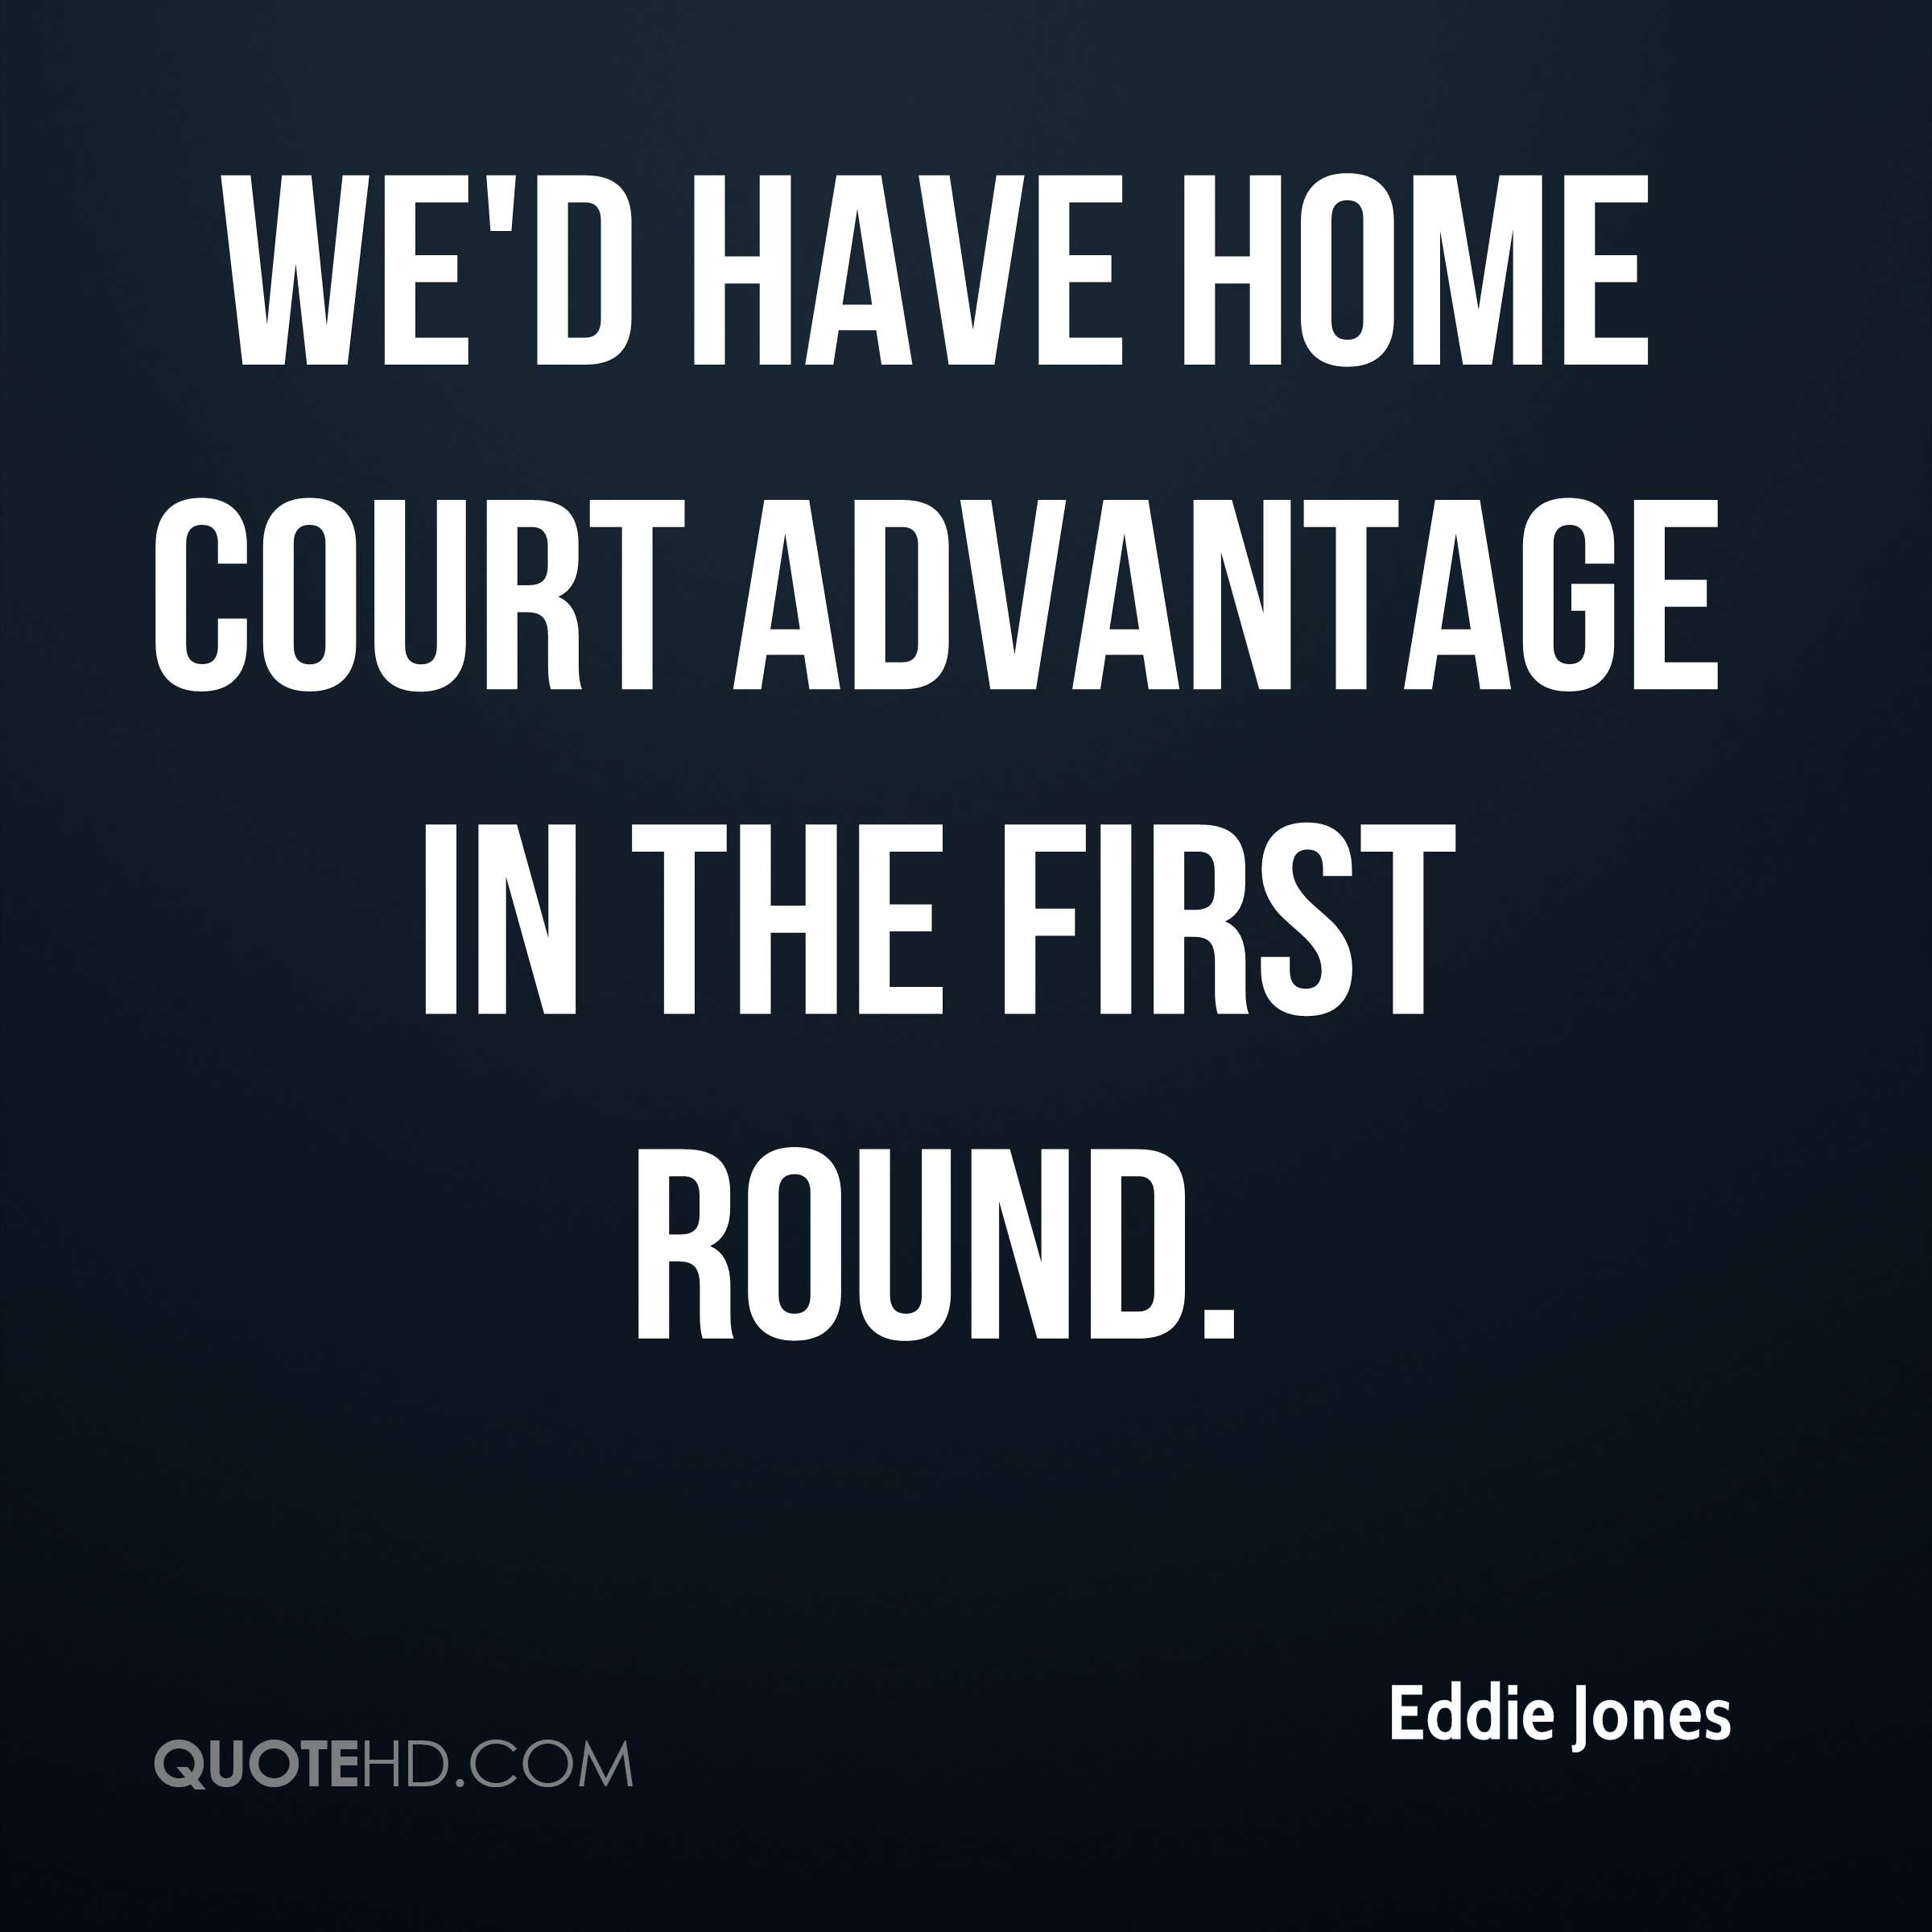 We'd have home court advantage in the first round.